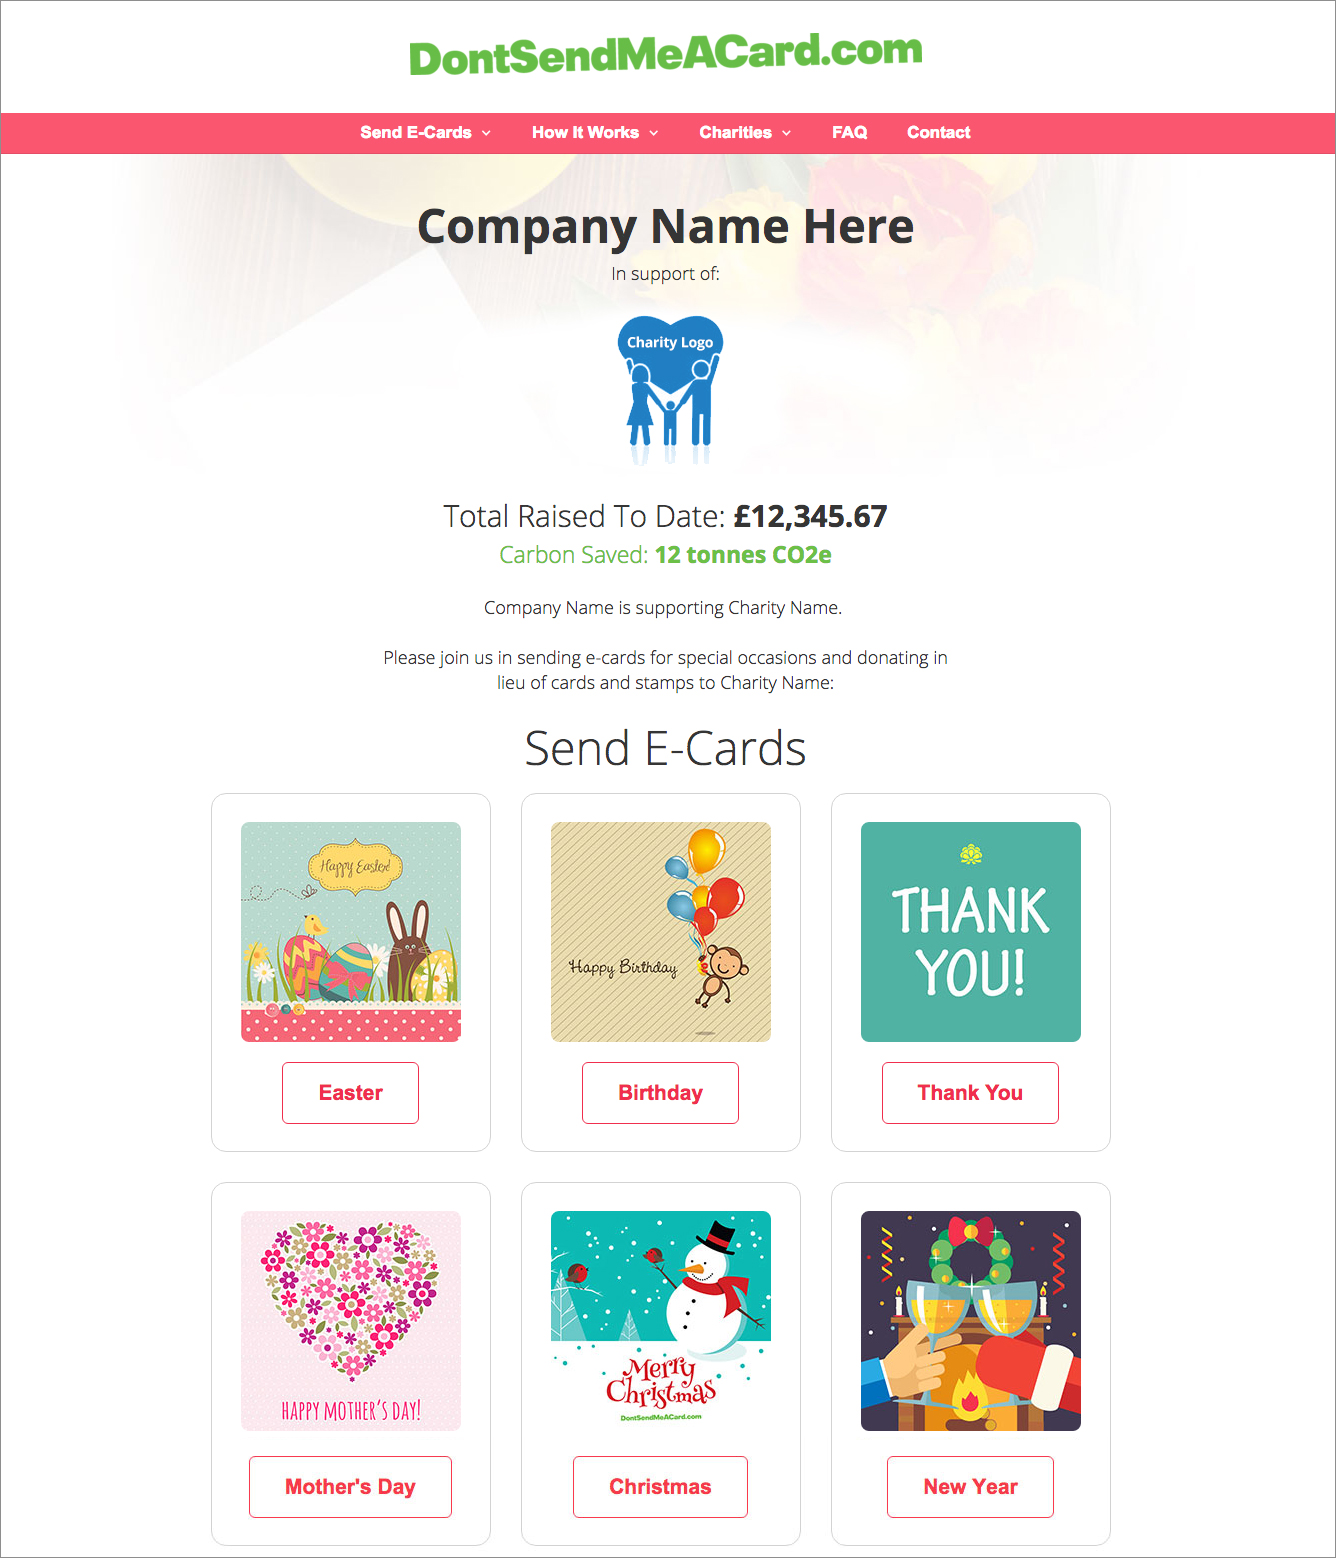 Example company landing page